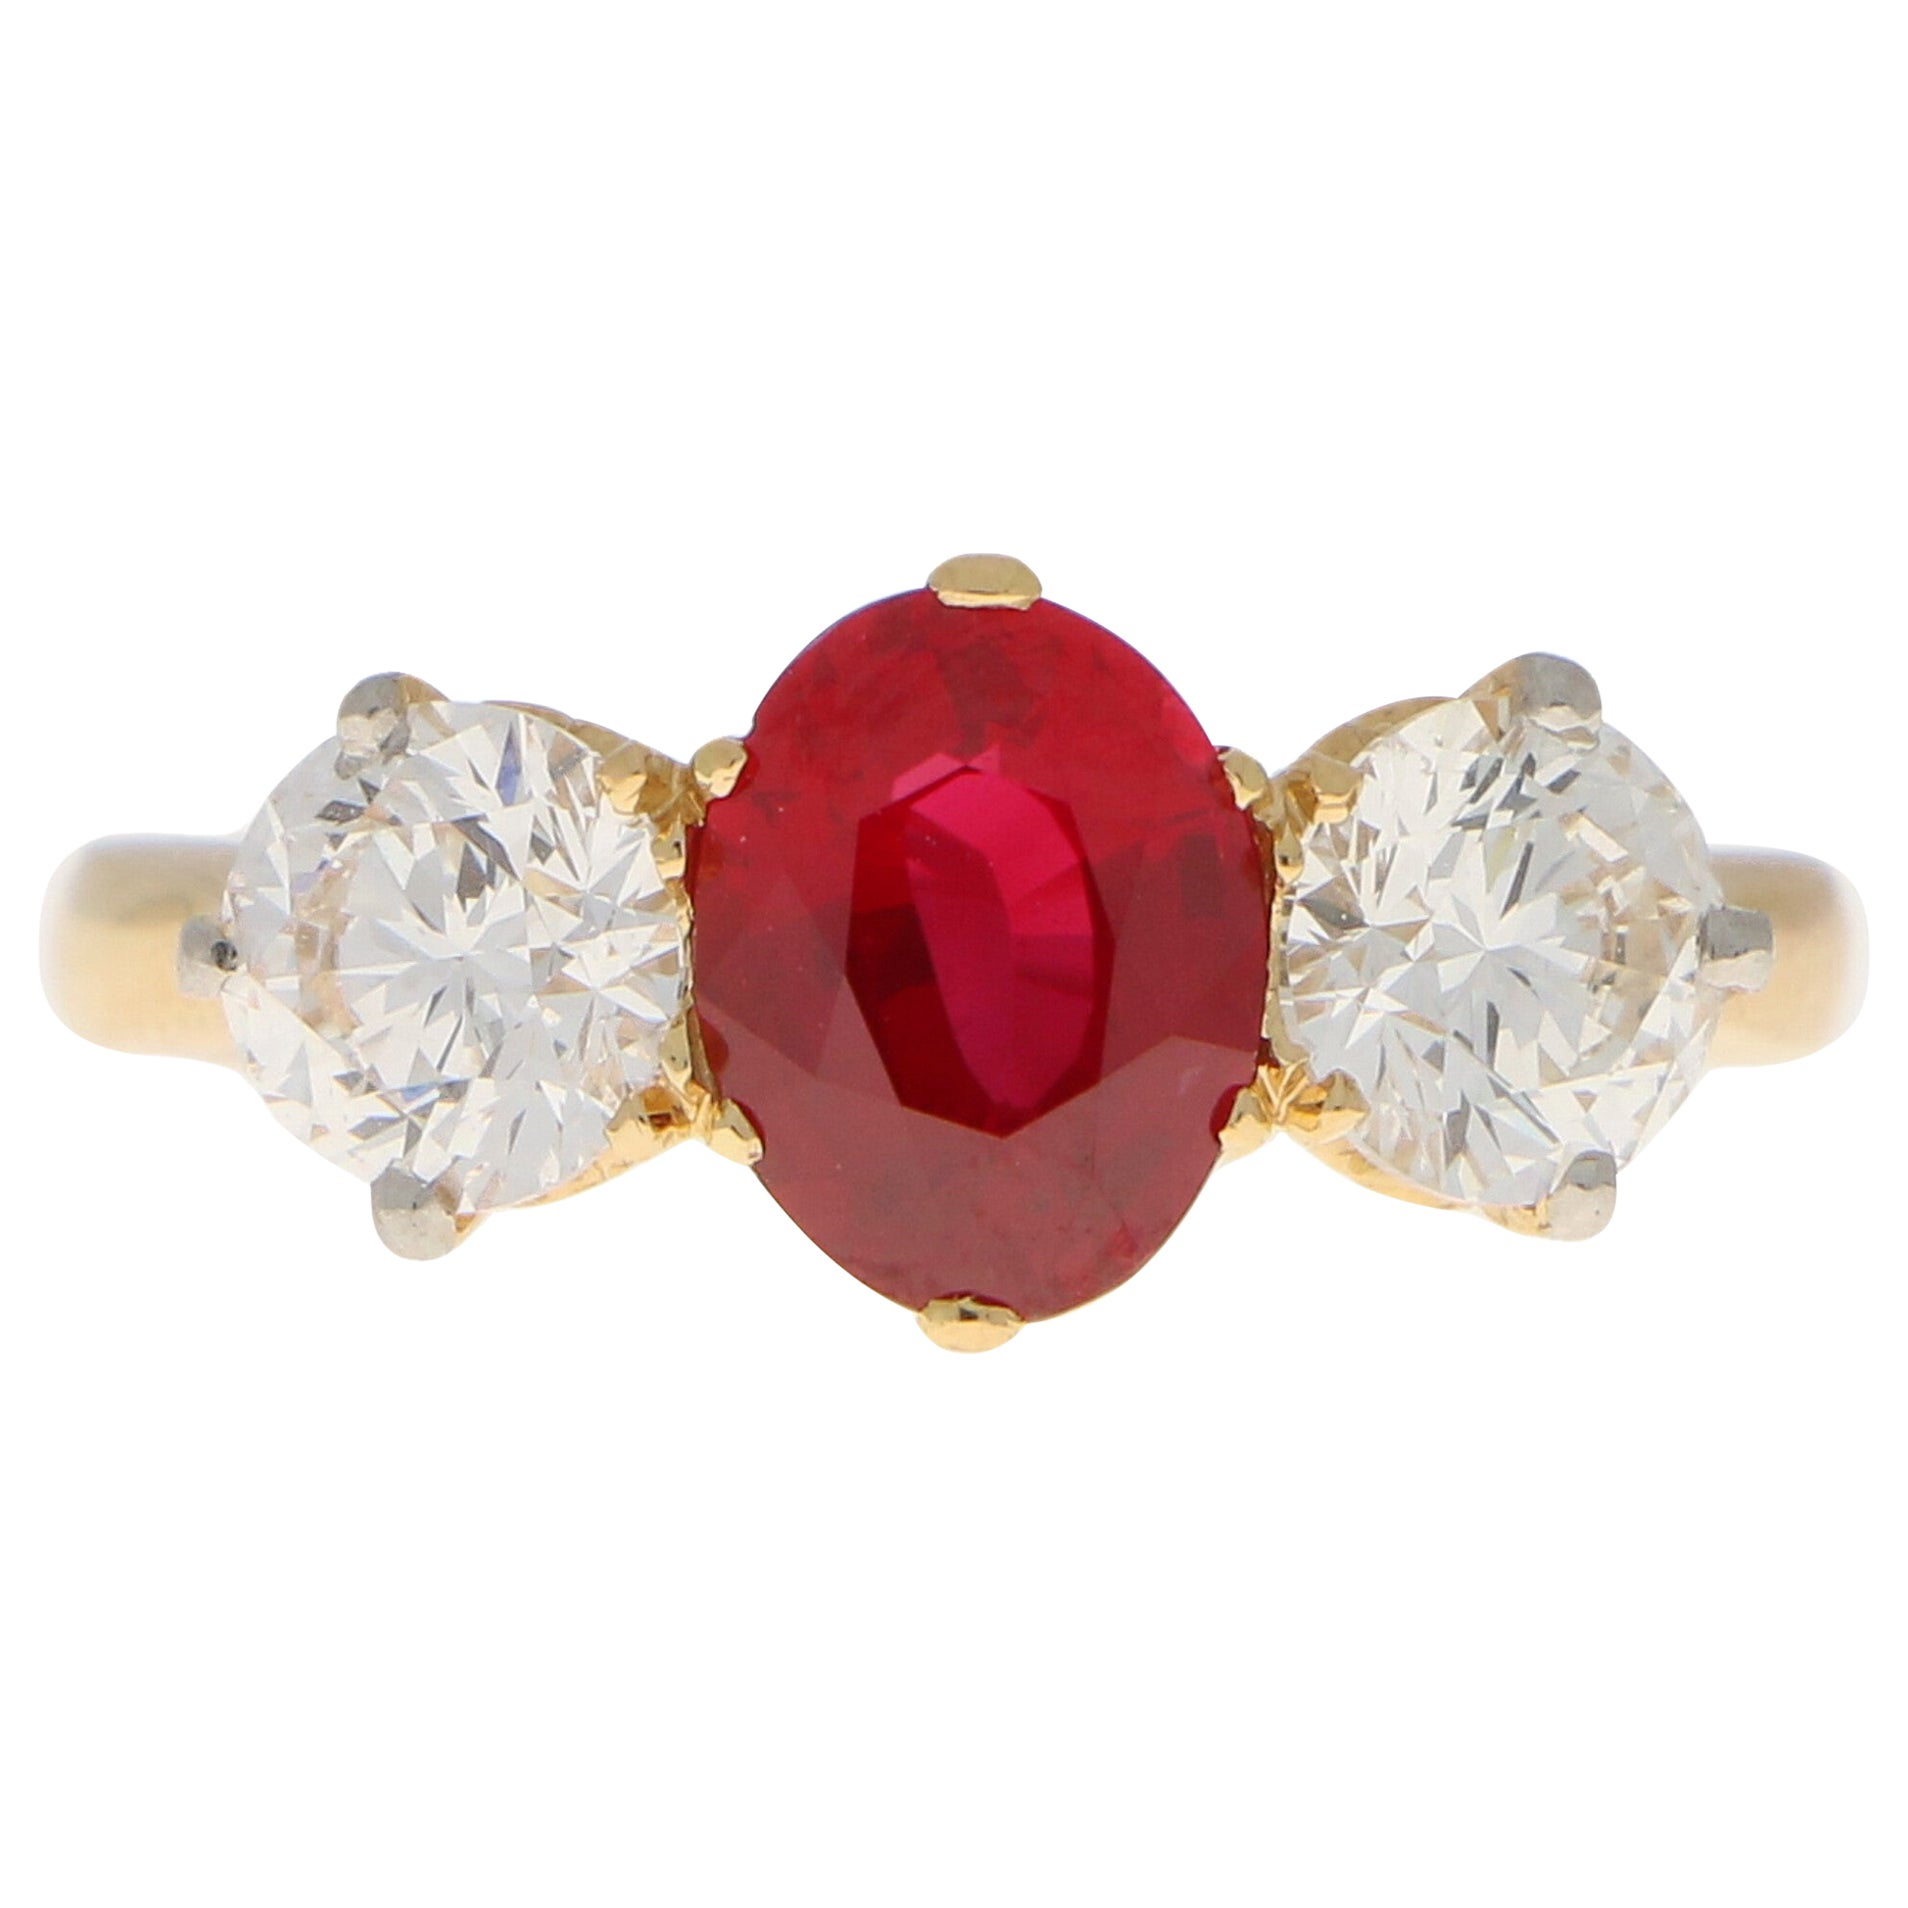 Red Ruby and Diamond Three-Stone Engagement Ring Set in 18 Karat Yellow Gold